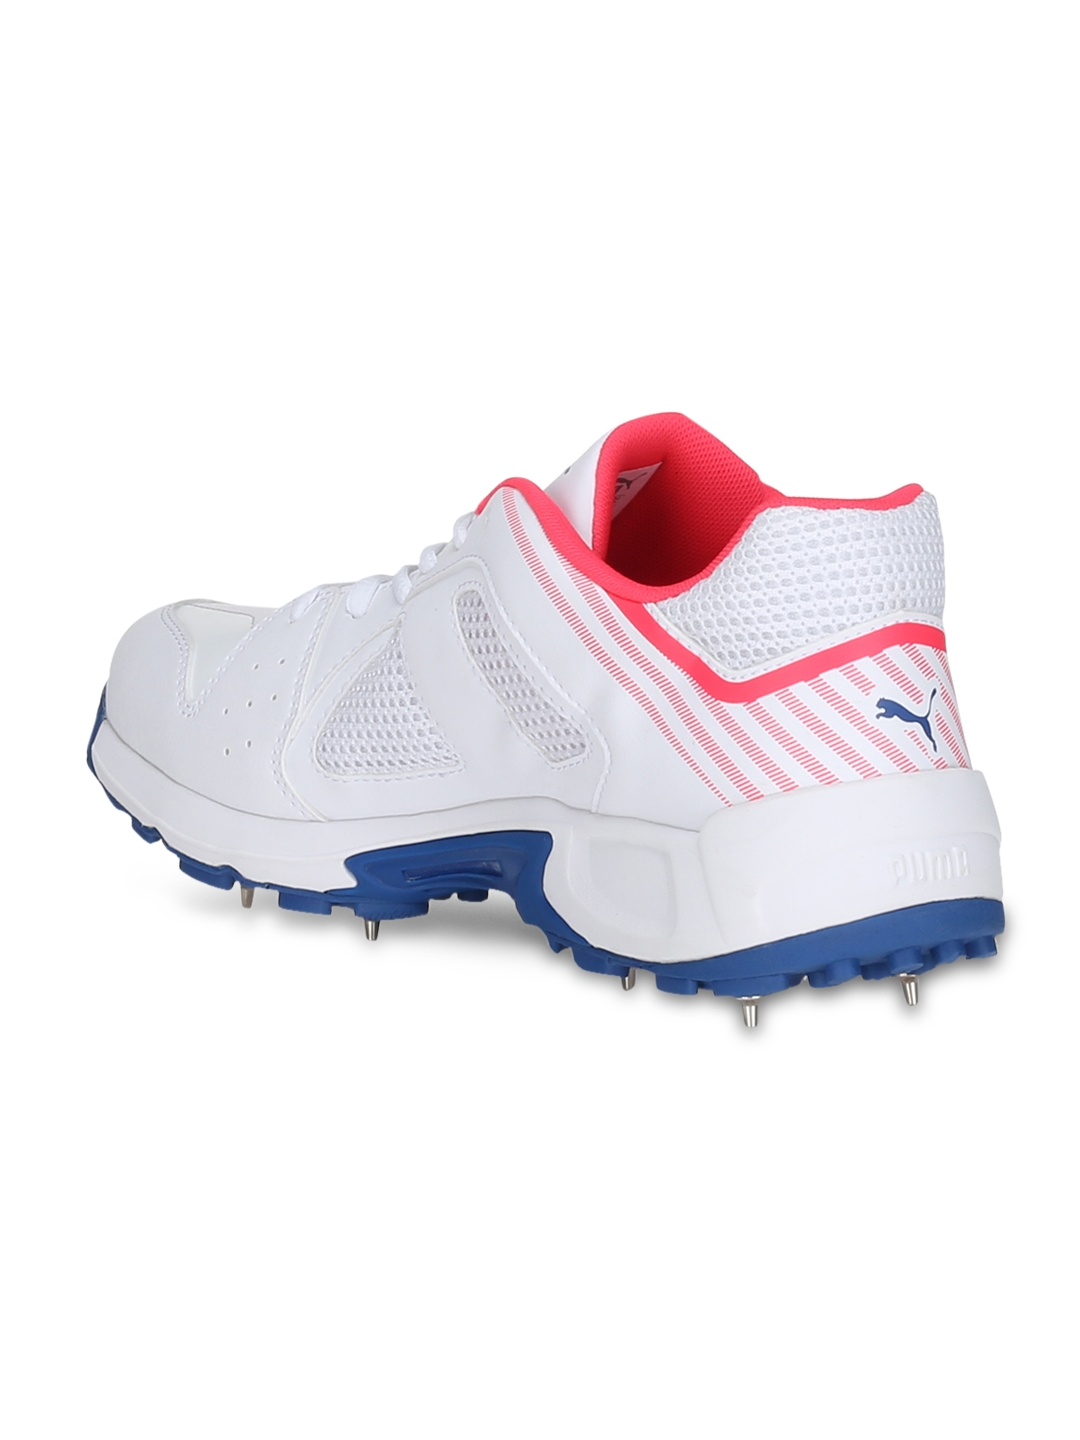 f0036f9e75d7be Buy Puma Men White Team Full Spike Cricket Shoes - Sports Shoes for ...